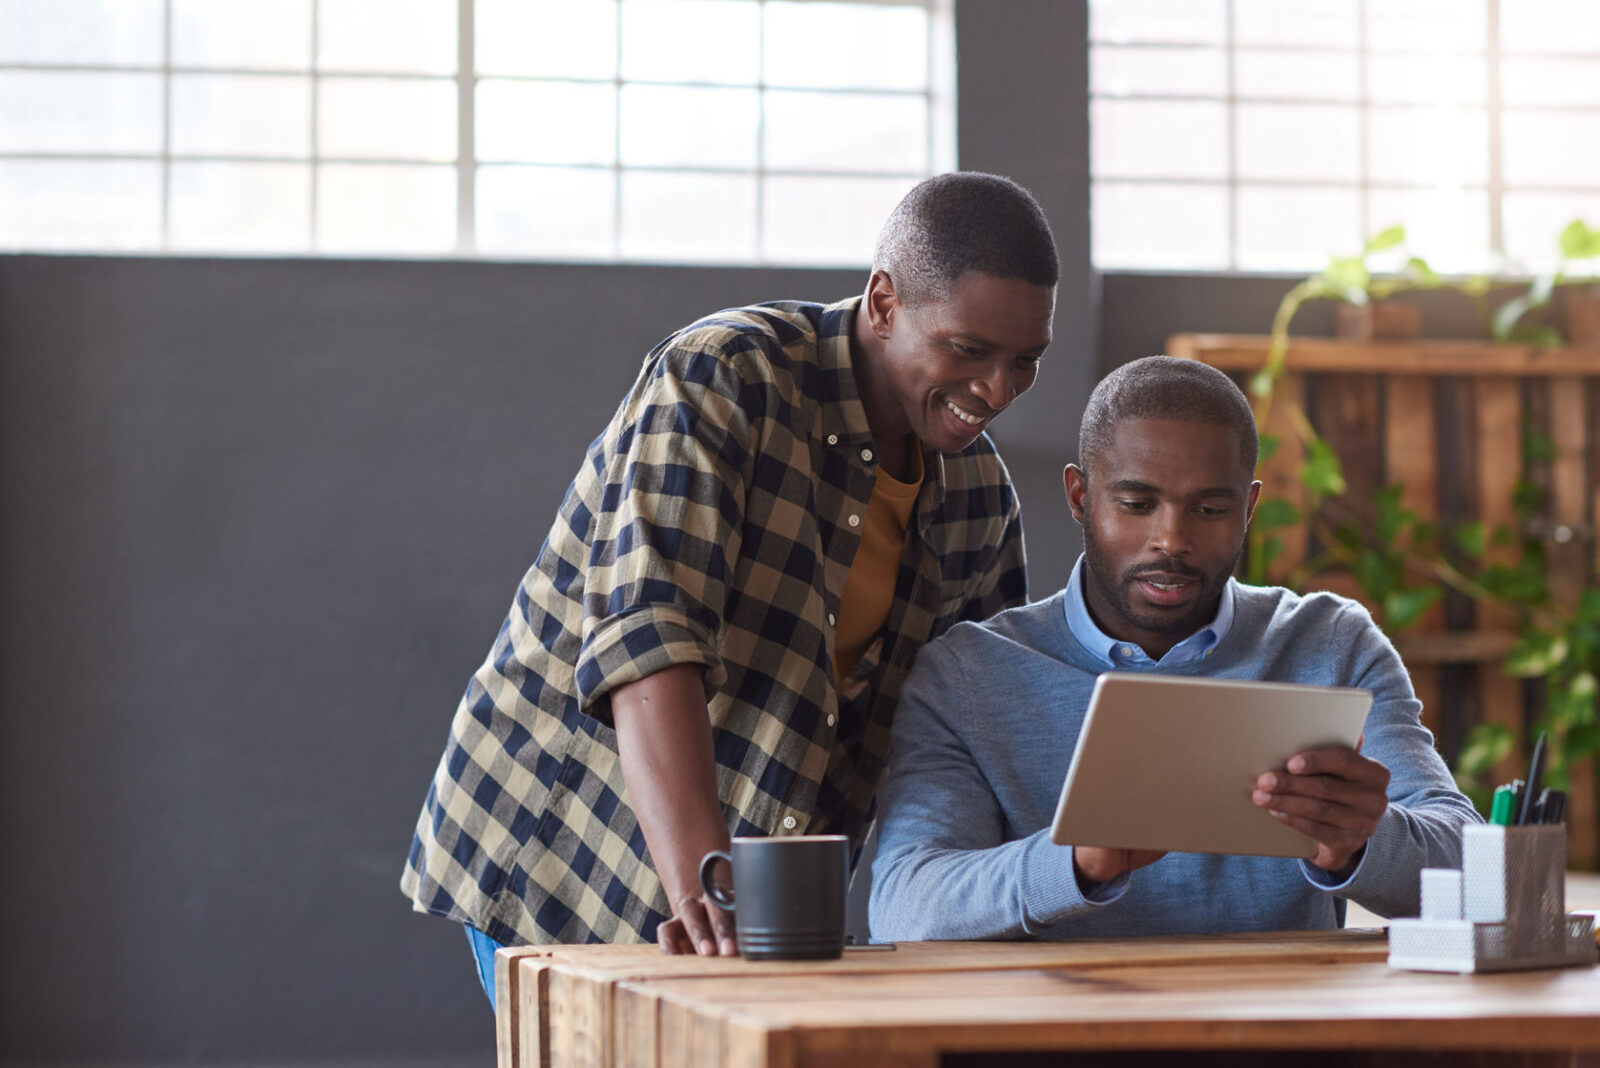 78370780 - smiling african coworkers using a digital tablet in an office